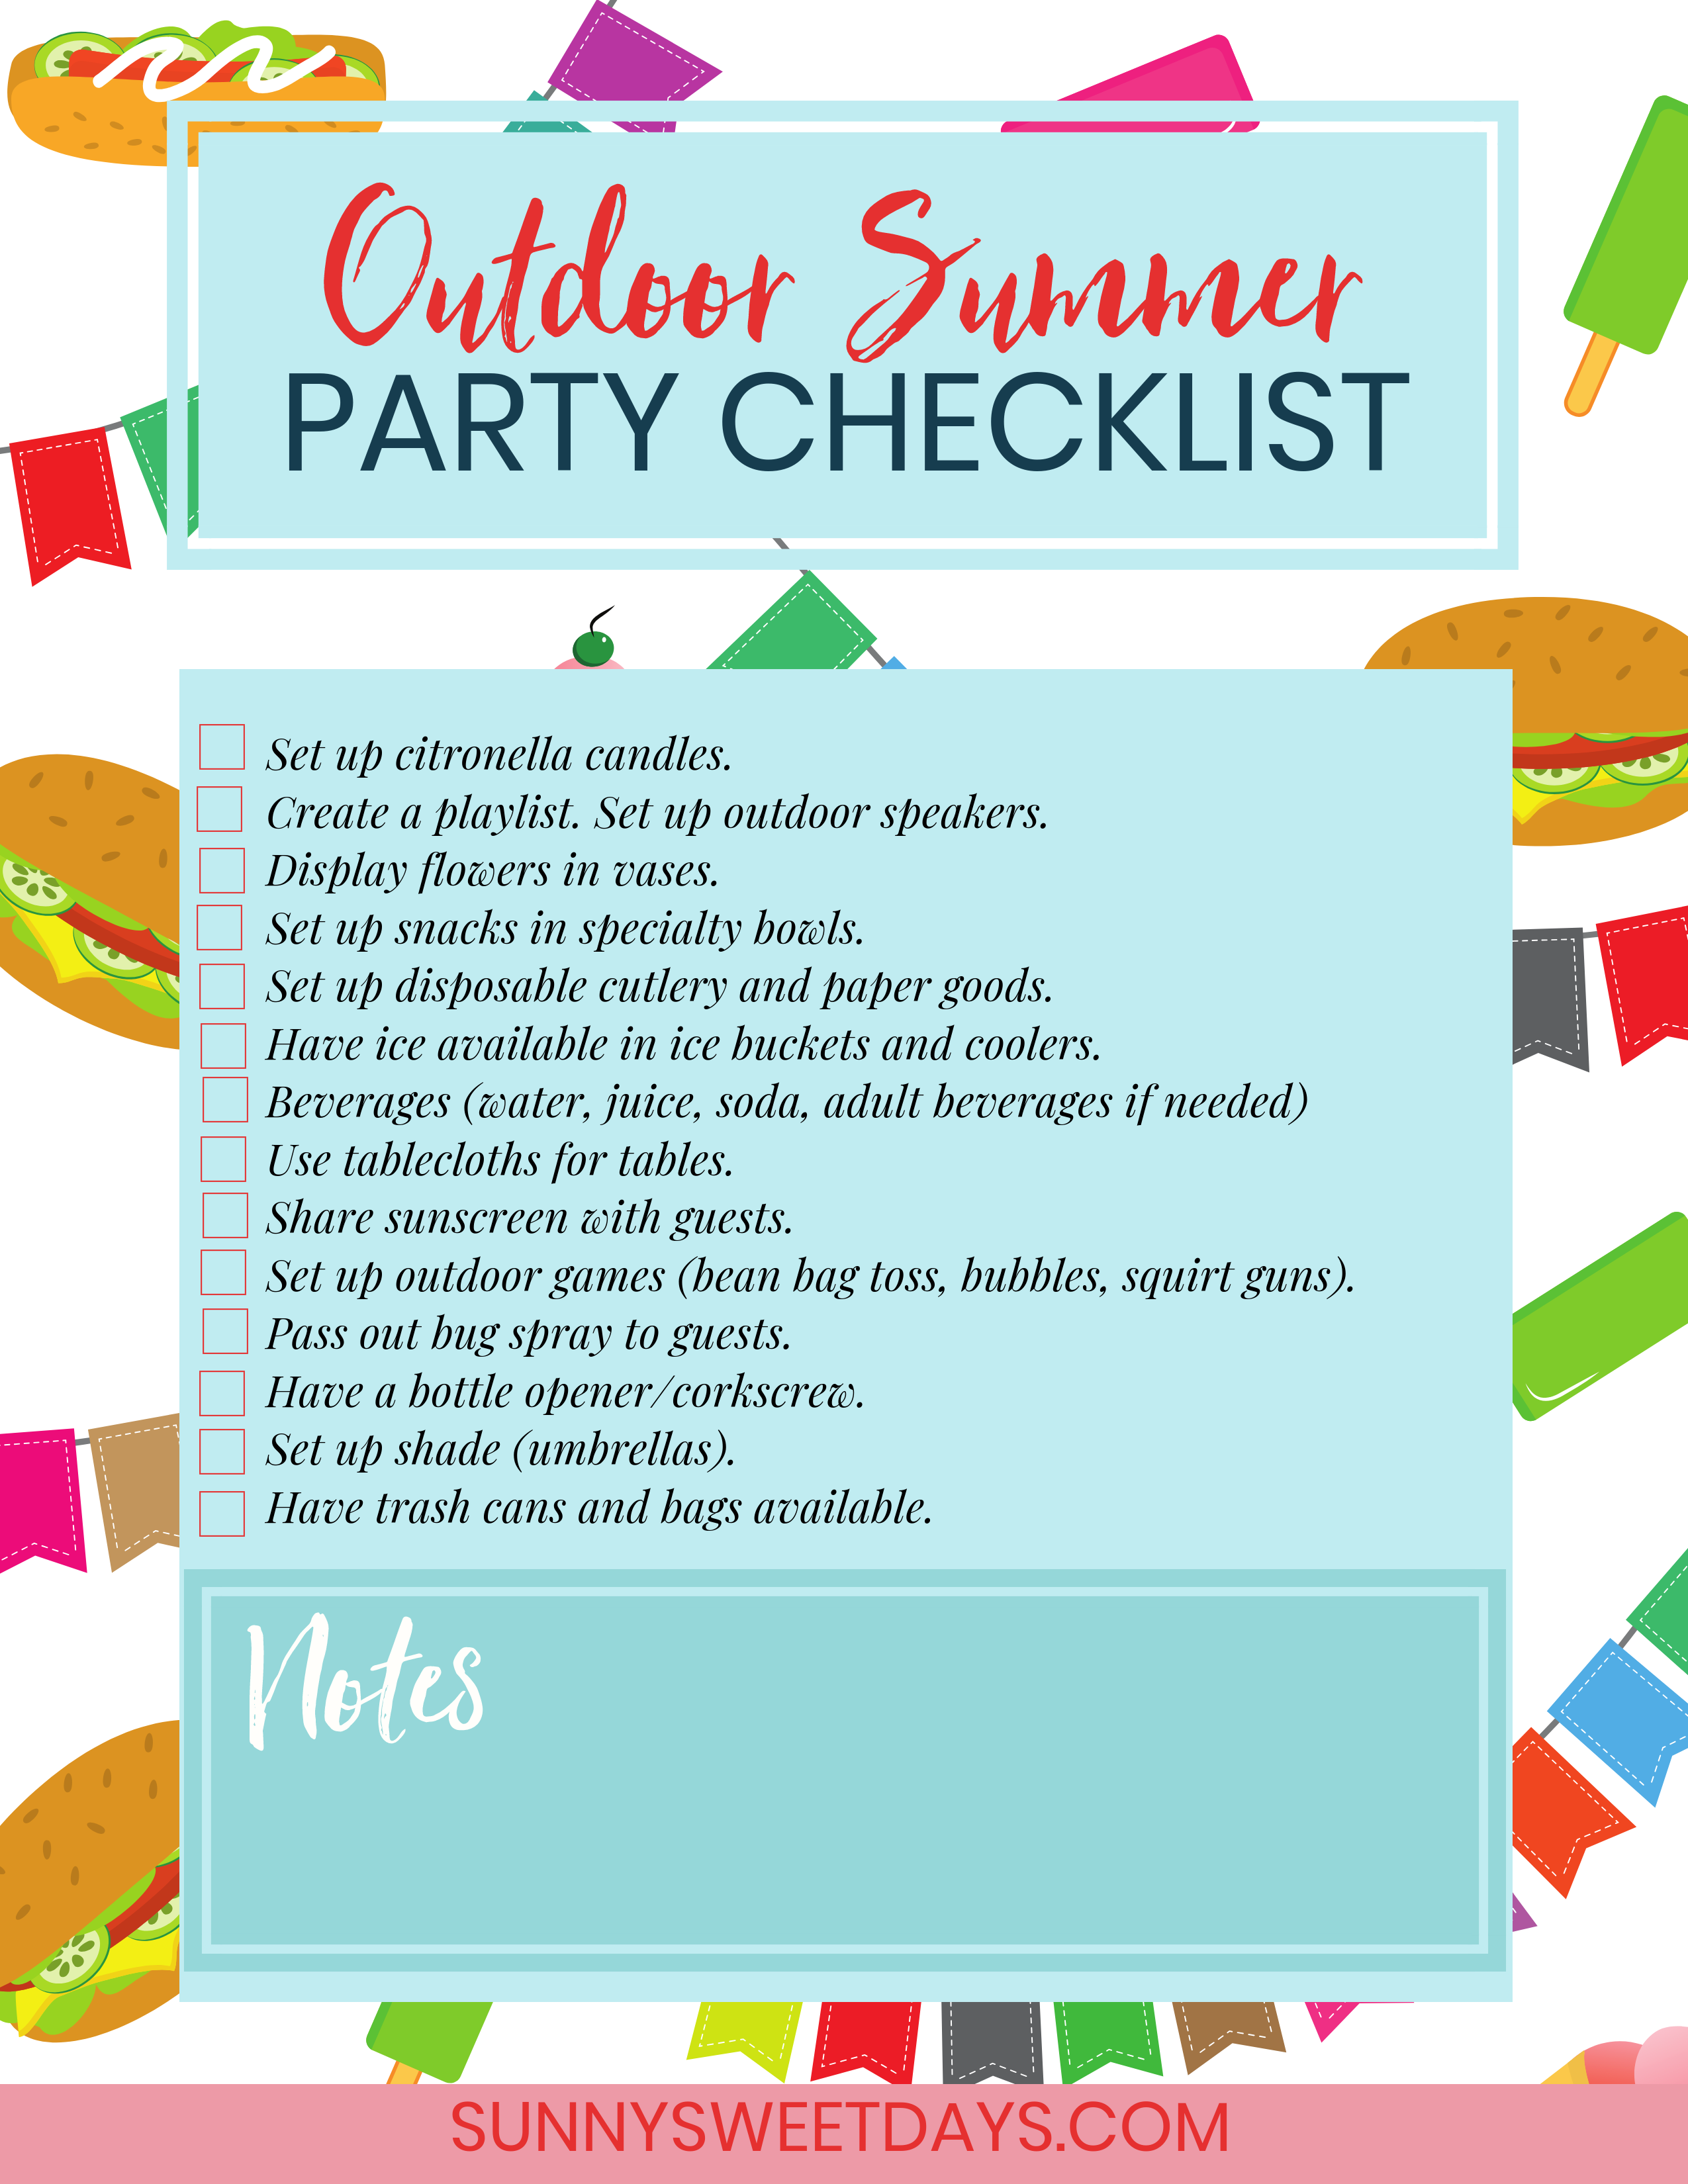 Outdoor Summer Party Checklist